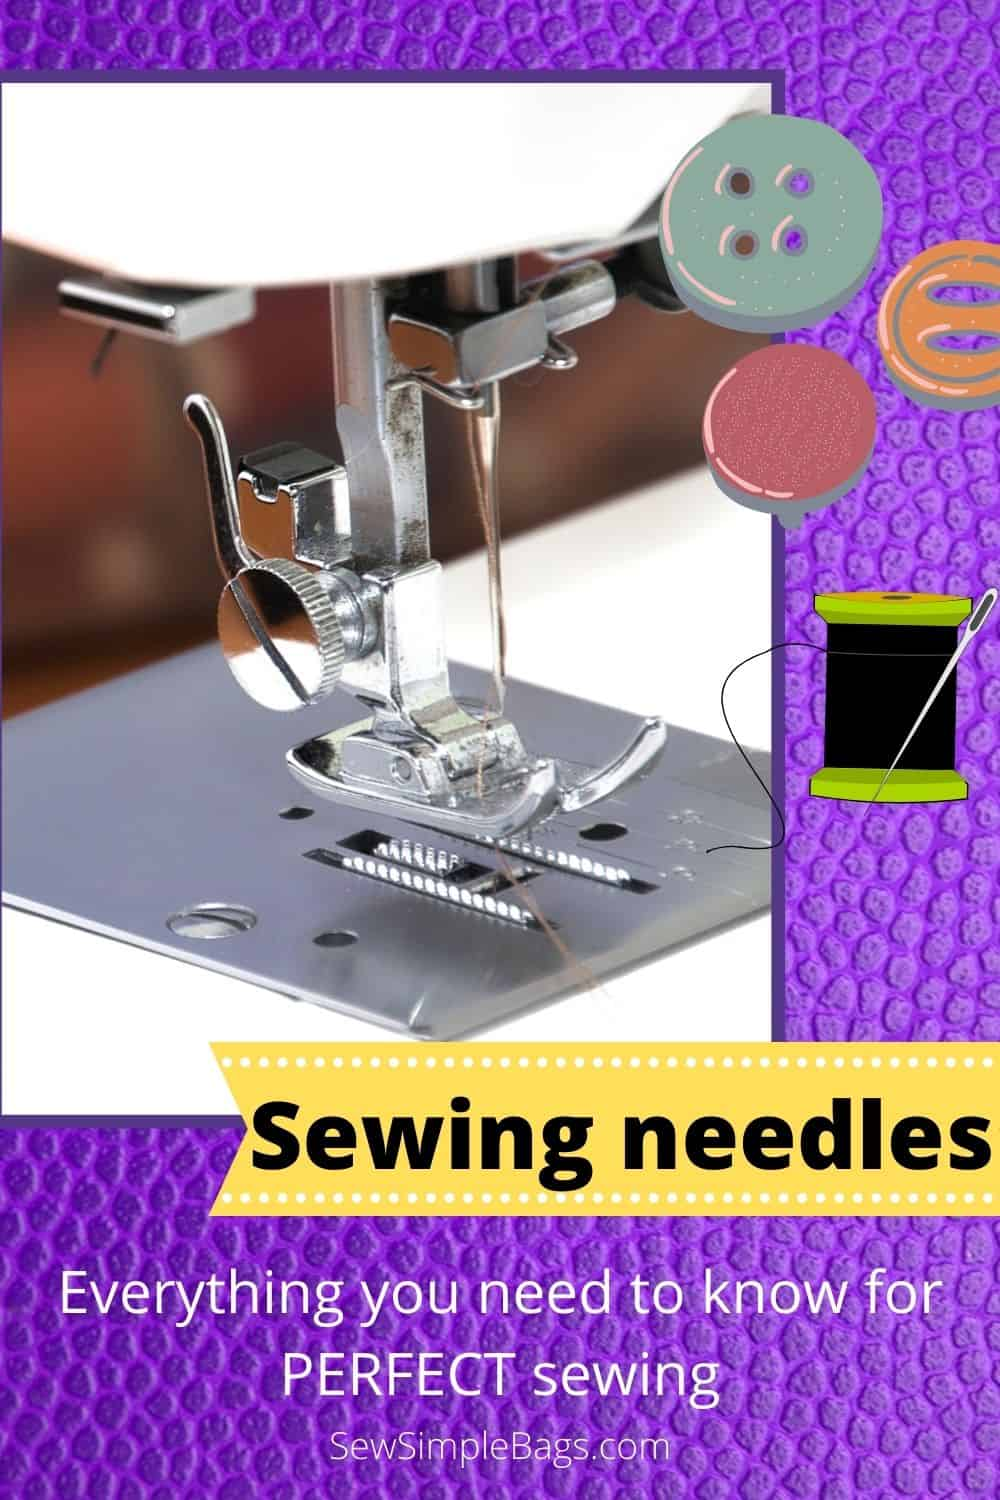 Everything you need to know about sewing machine needles, image of sewing machine needle and presser foot